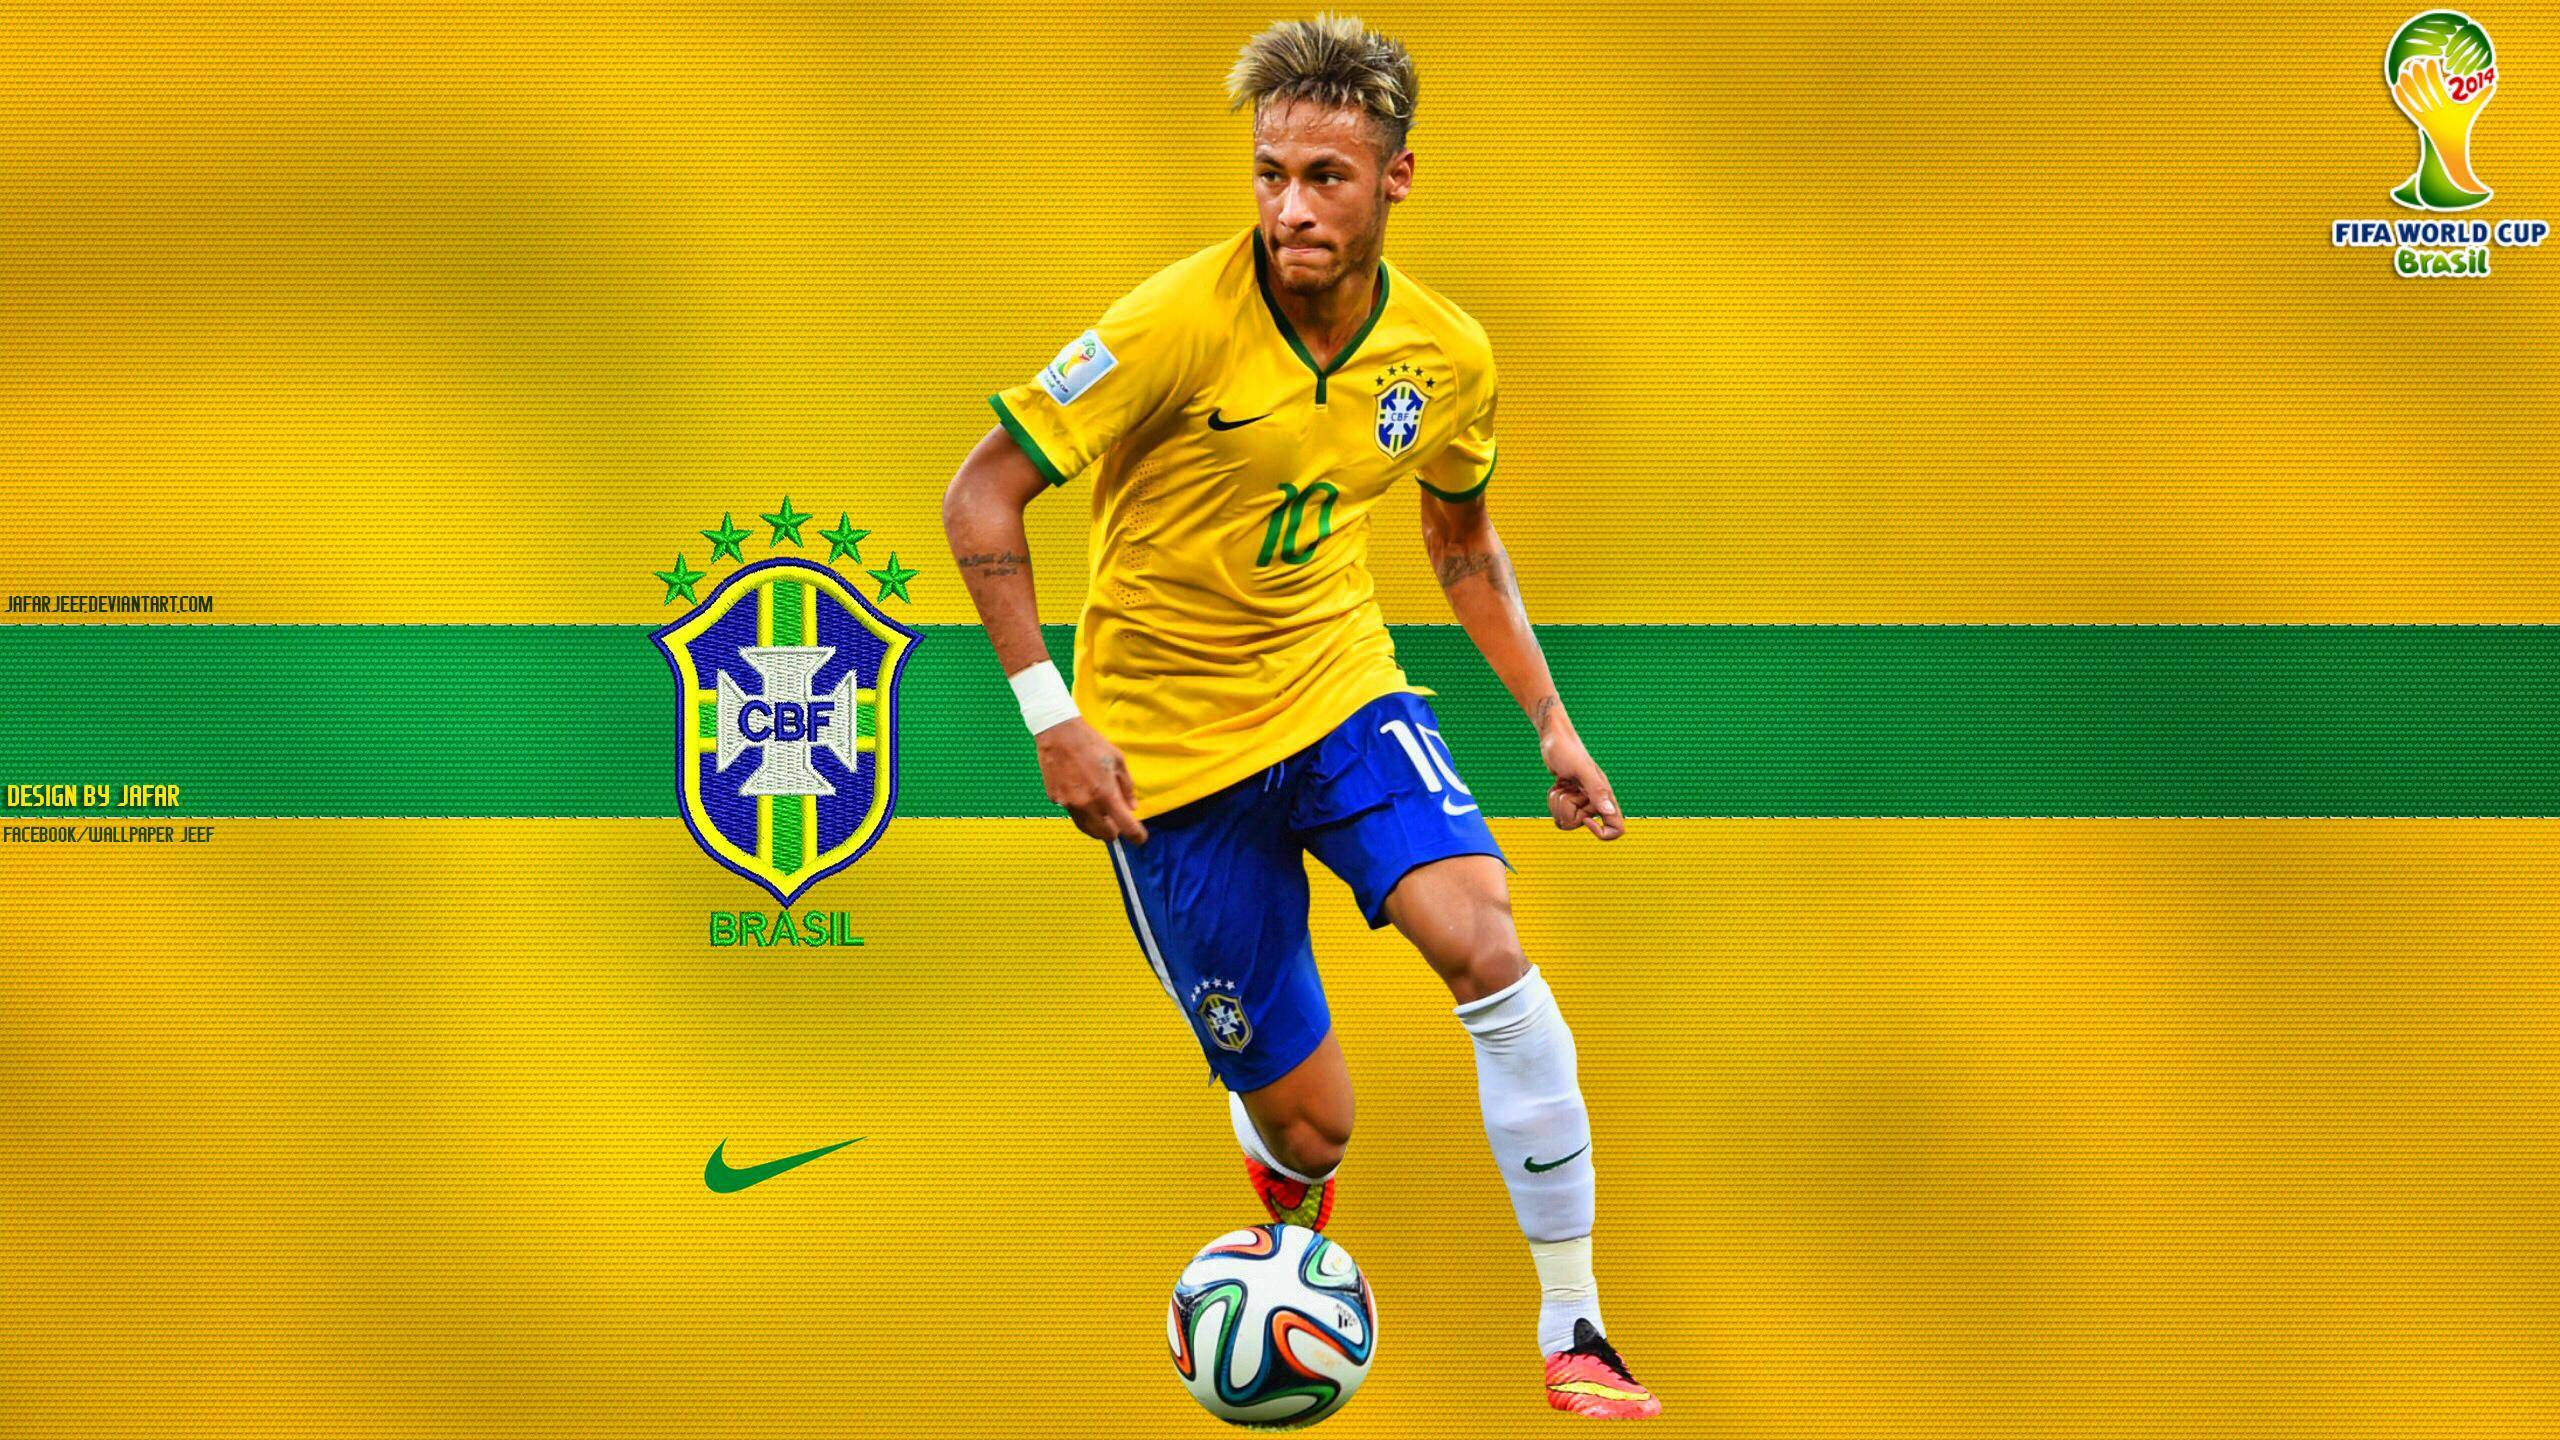 Neymar wallpapers pictures images - Brazil football hd wallpapers 2018 ...